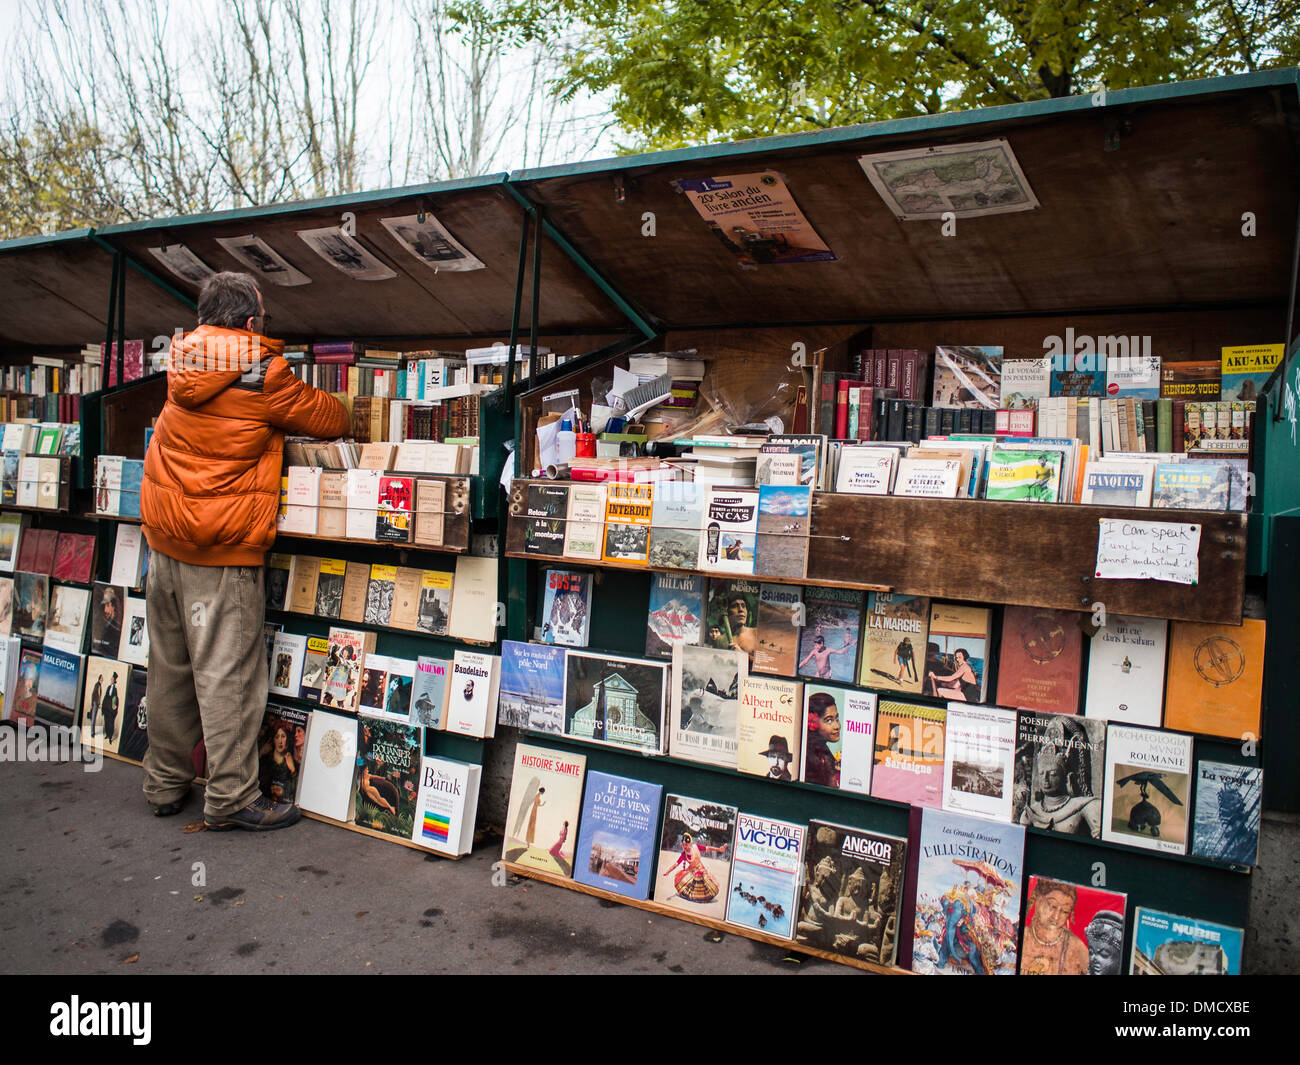 Bouquiniste in the river Seine bank - Stock Image